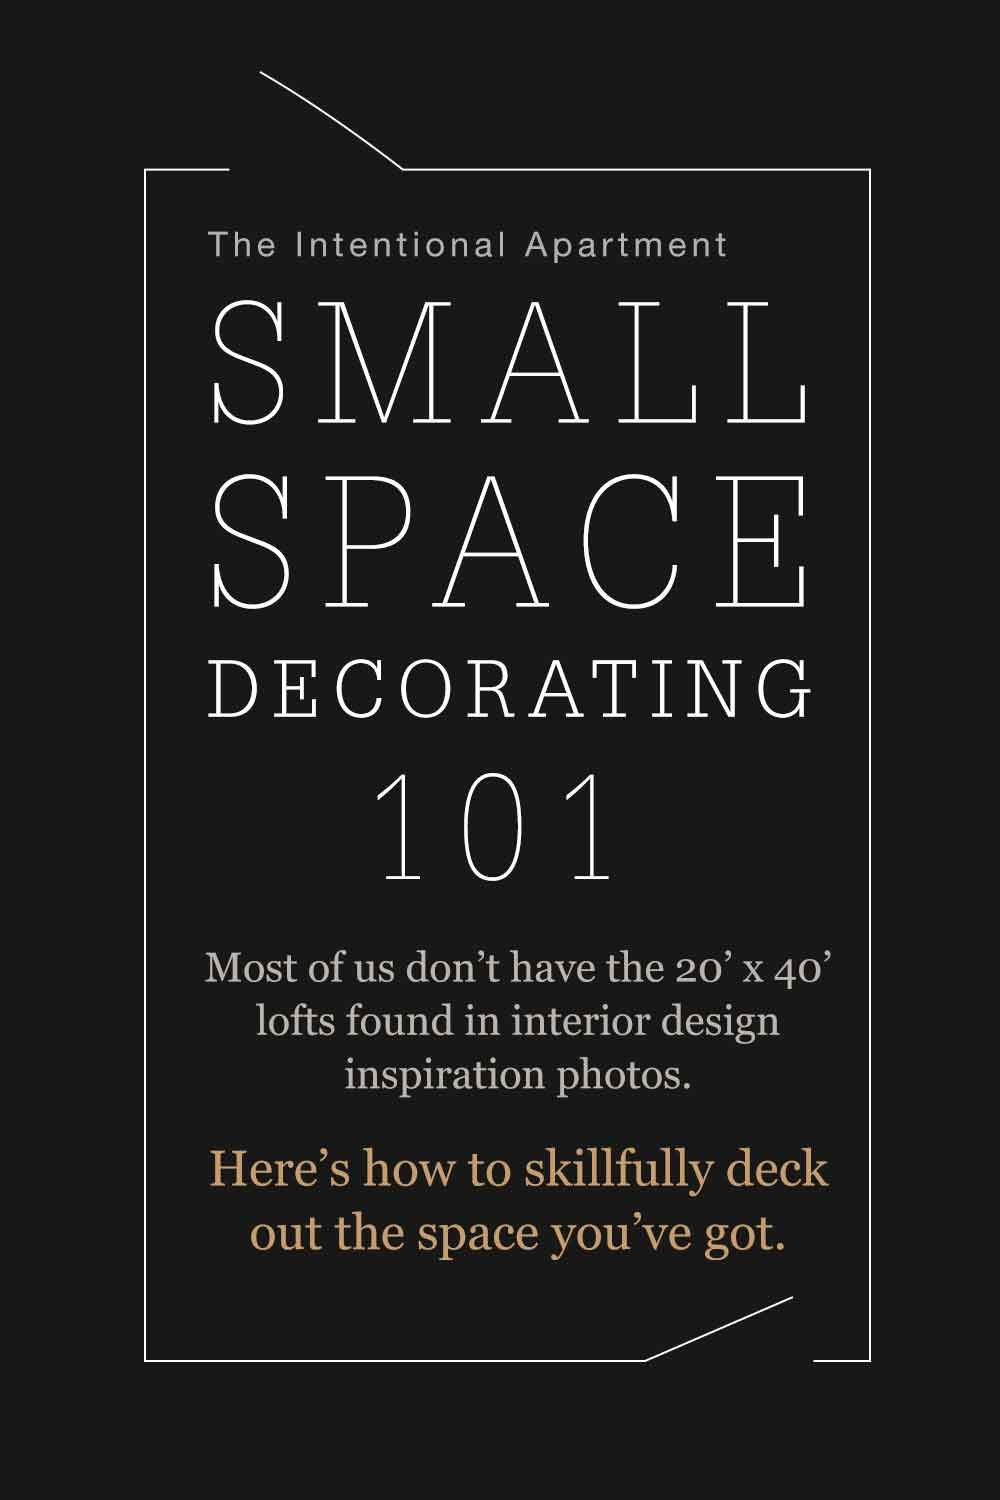 Small Space Decorating 101 images